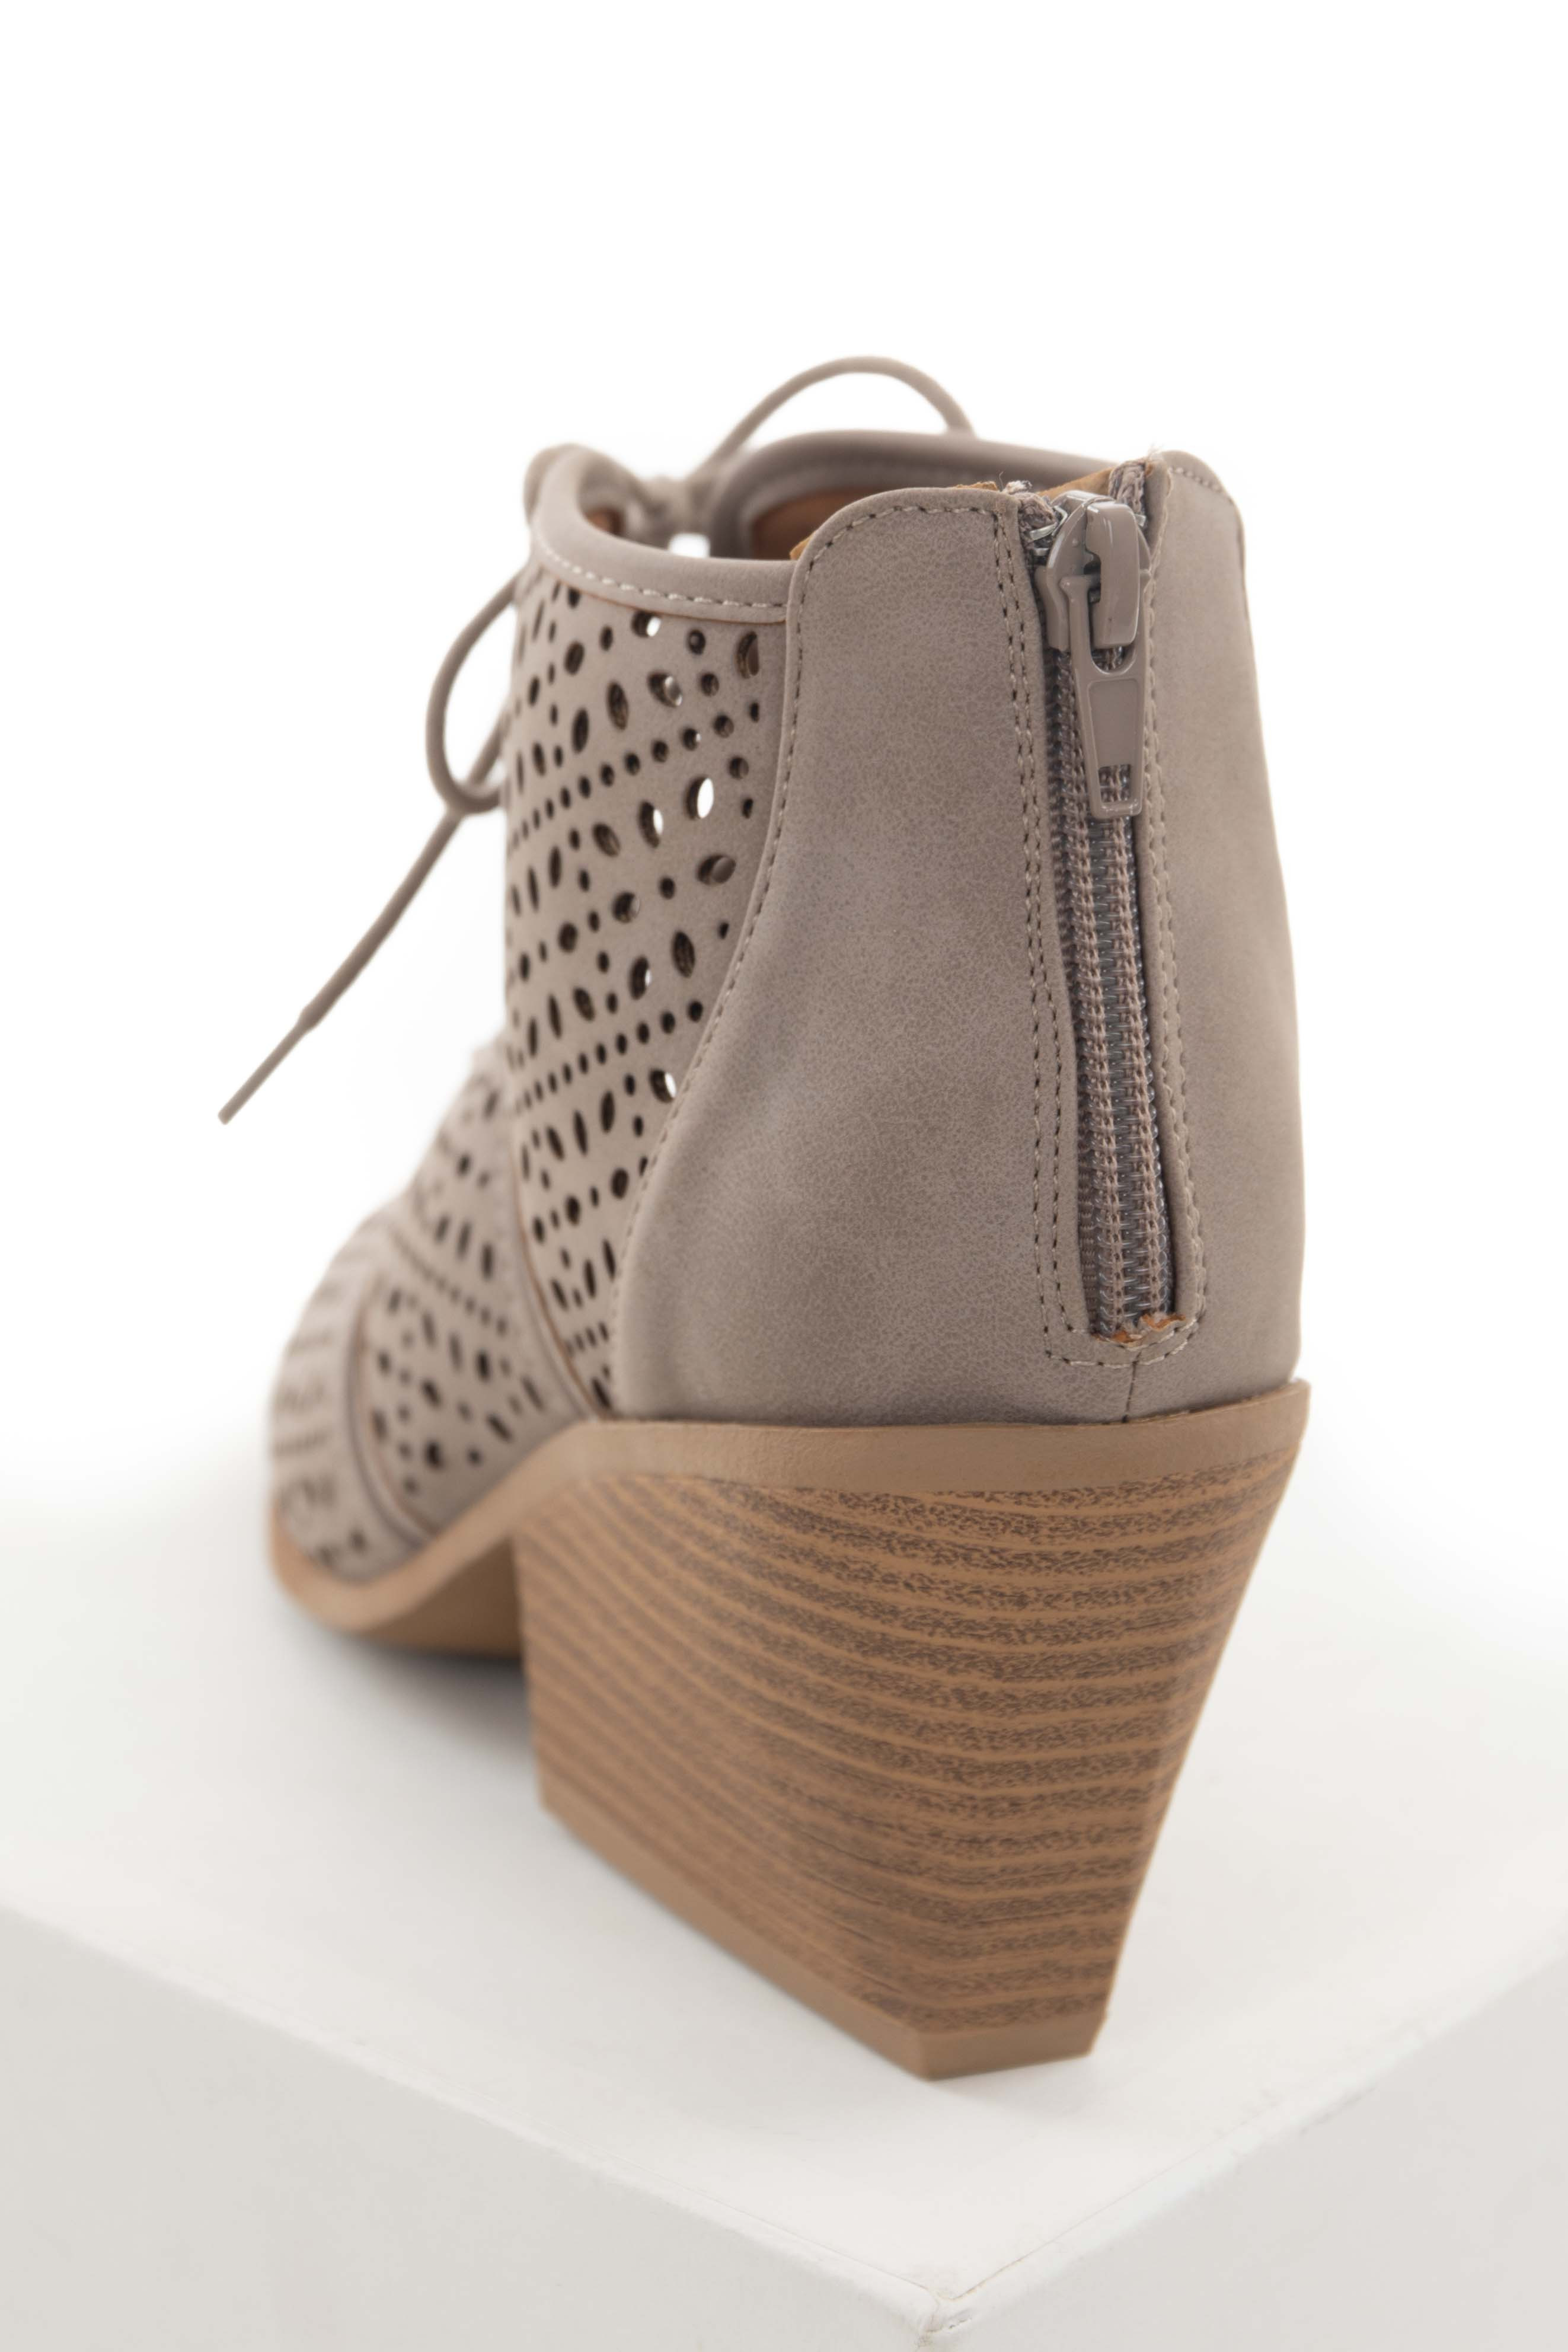 Taupe Peep Toe Stacked Heel Perforated Bootie